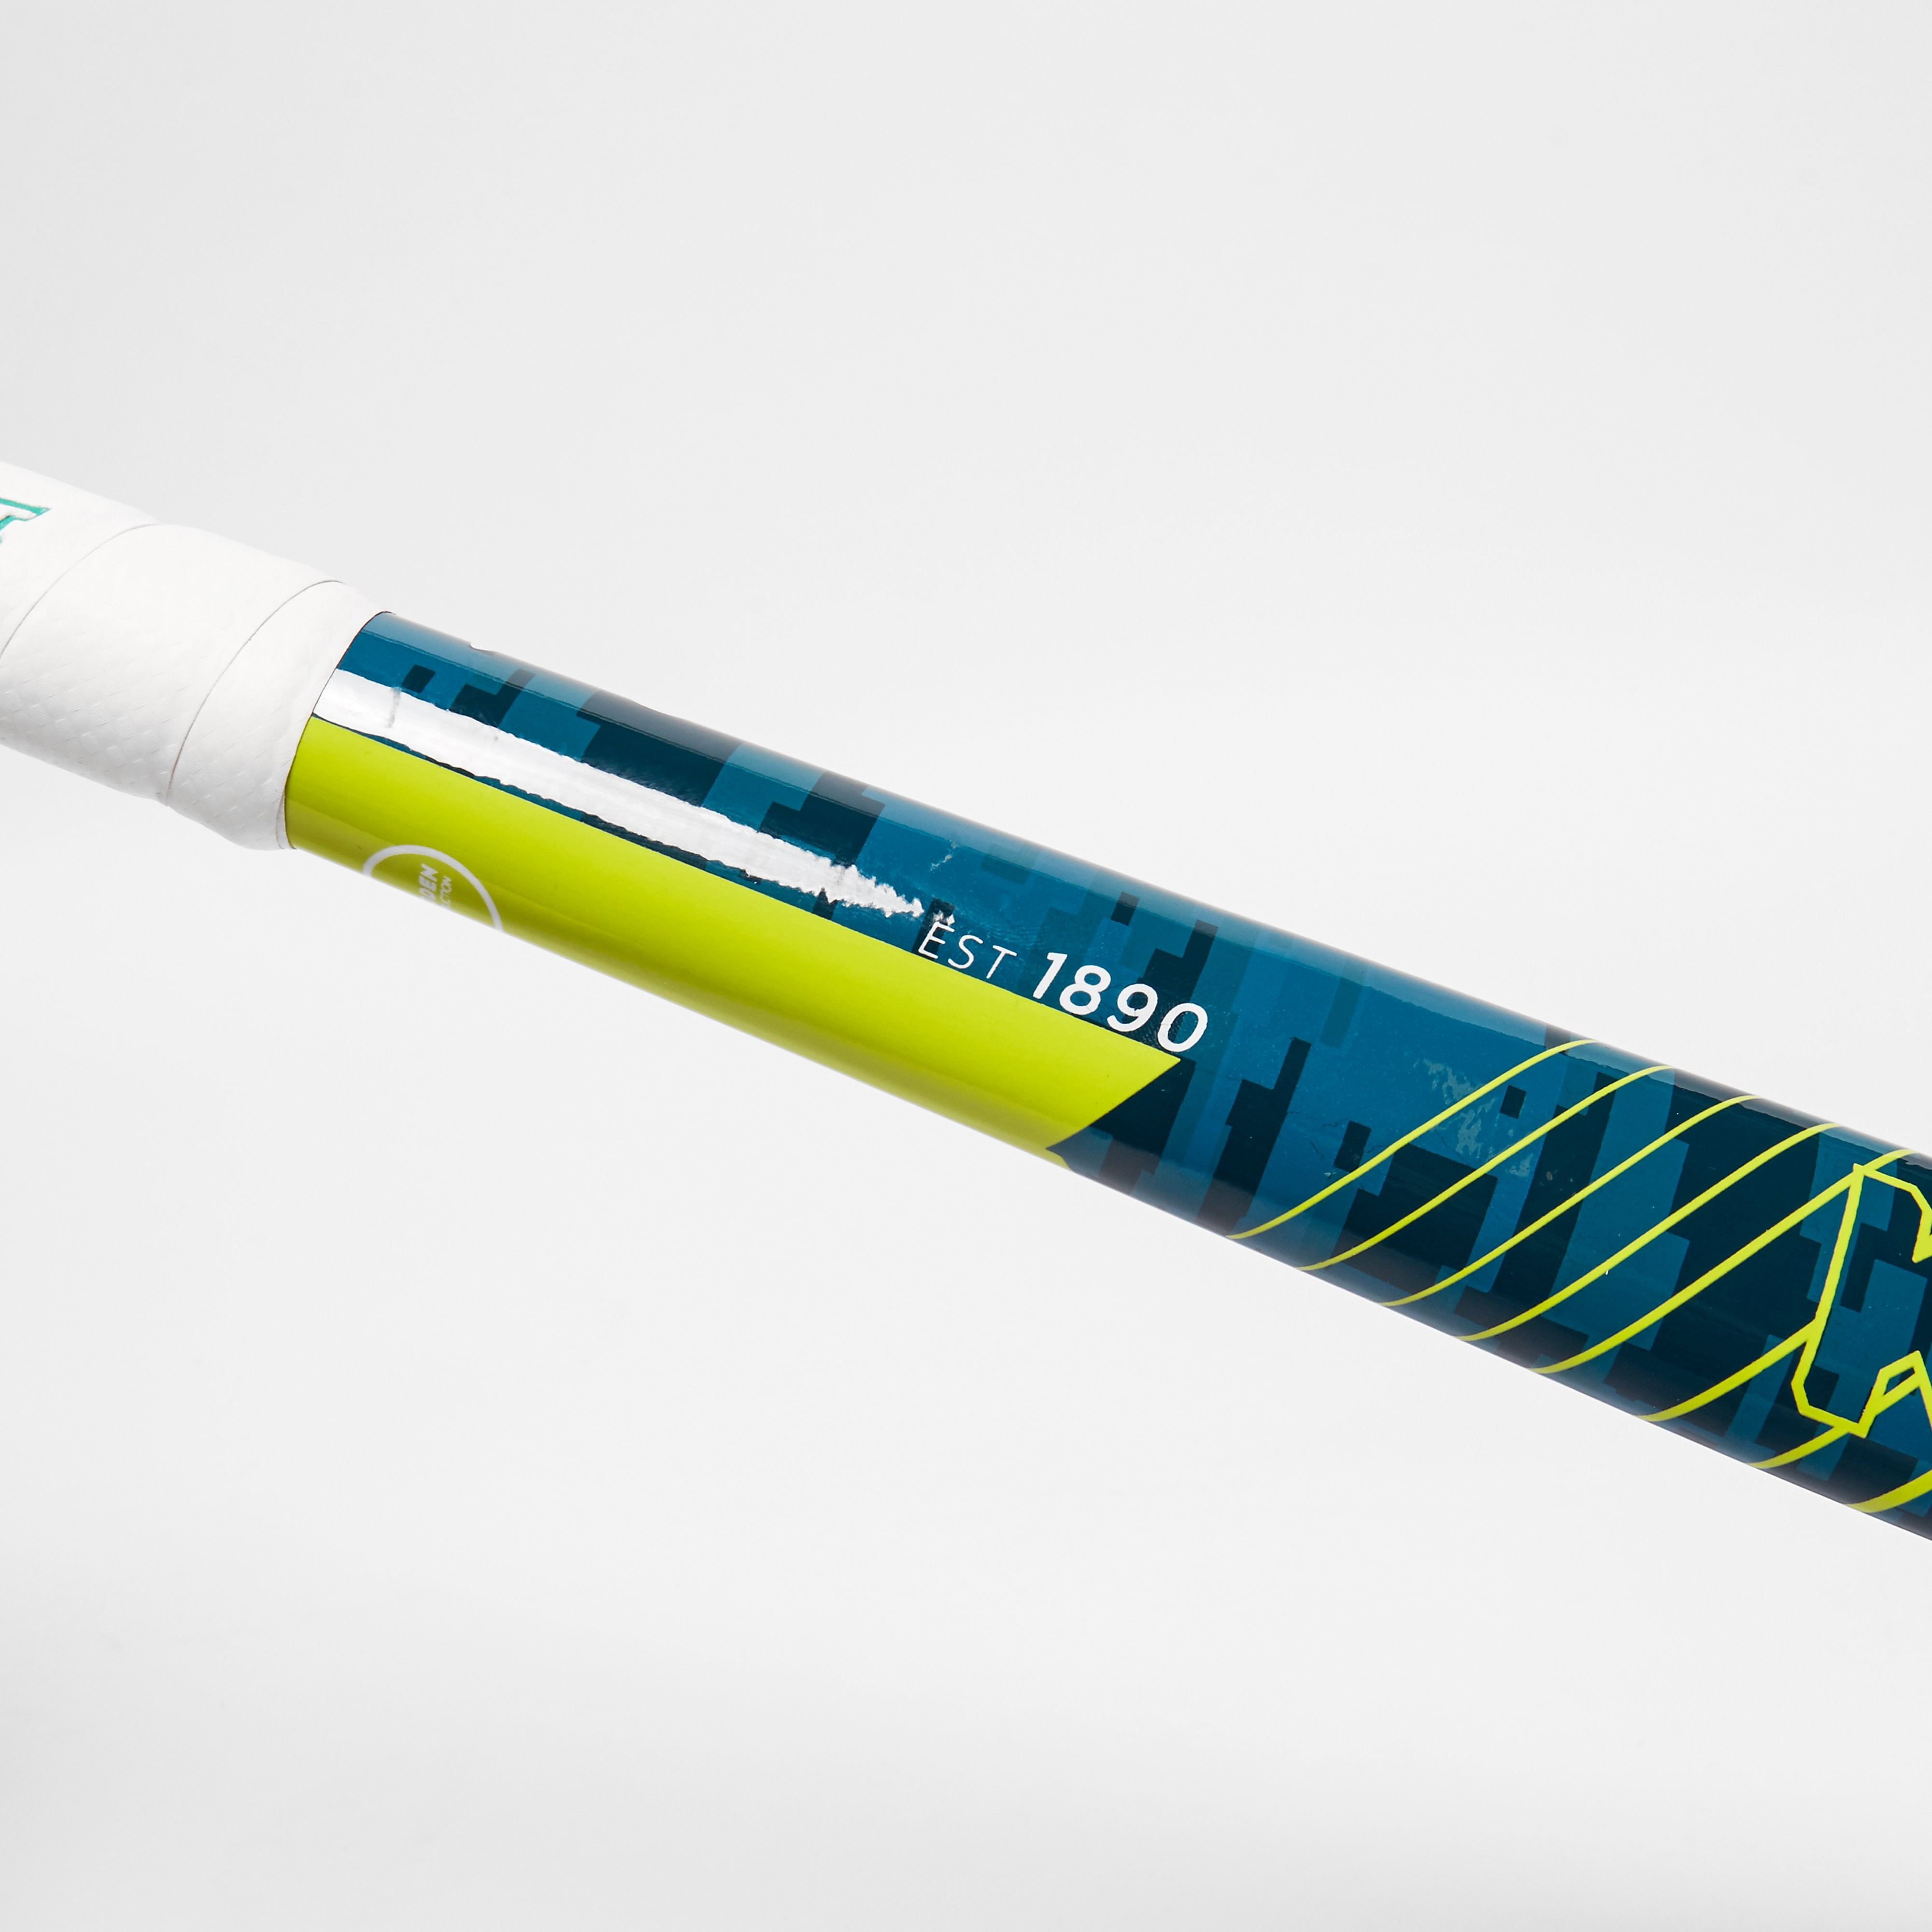 Kookaburra Burst Wooden Junior Hockey Stick